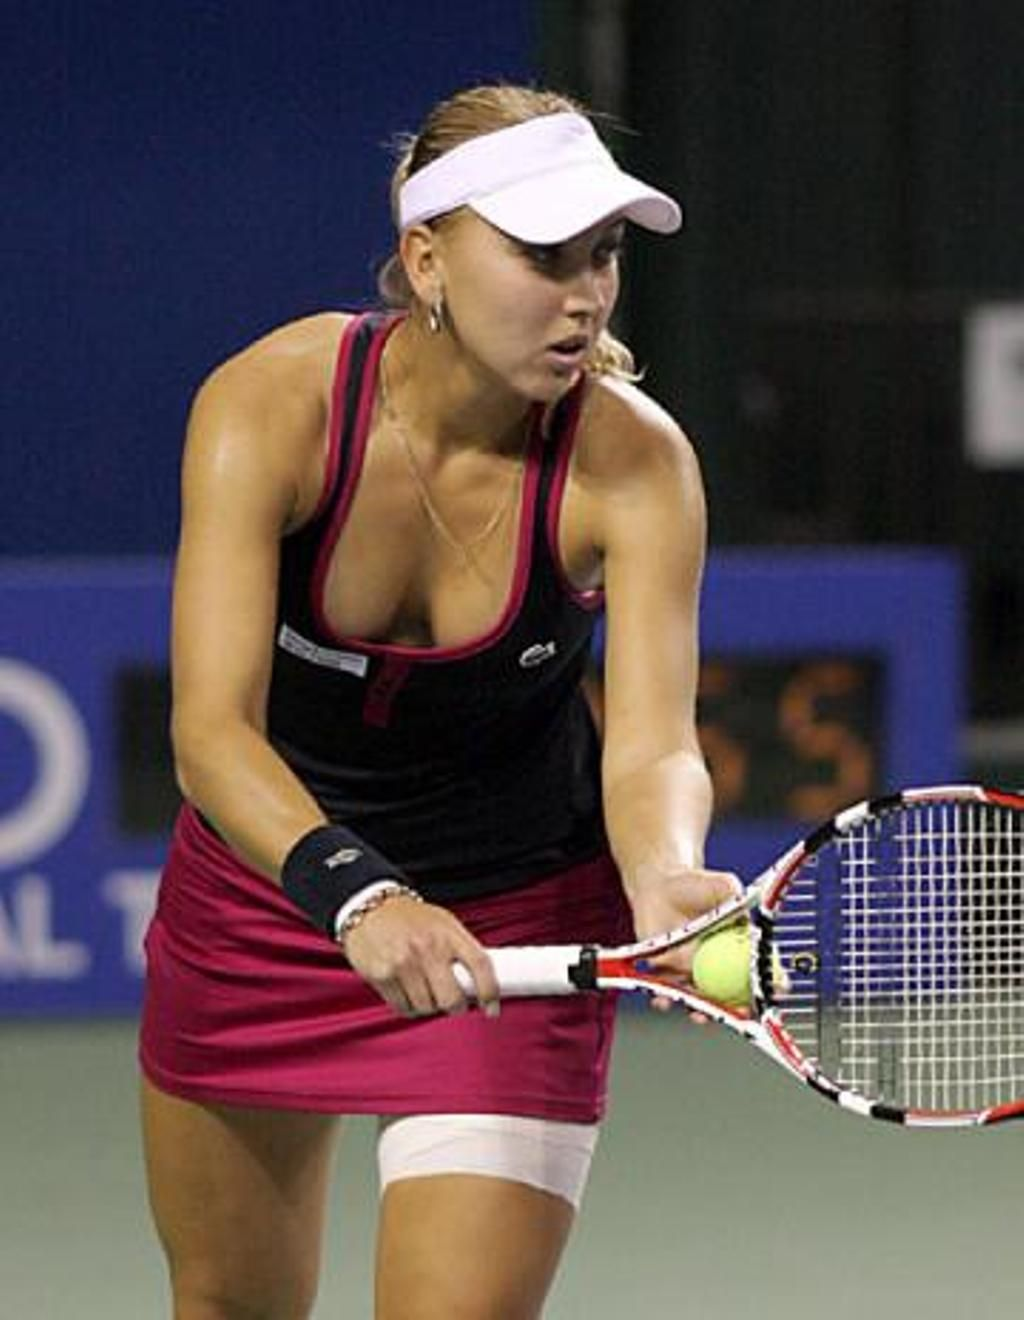 Elena Vesnina Is A Ukranian Player And She Was Born In 1986 In Russia Description From Pakistan Jobz Pk I Tennis Players Female Ladies Tennis Anna Kournikova